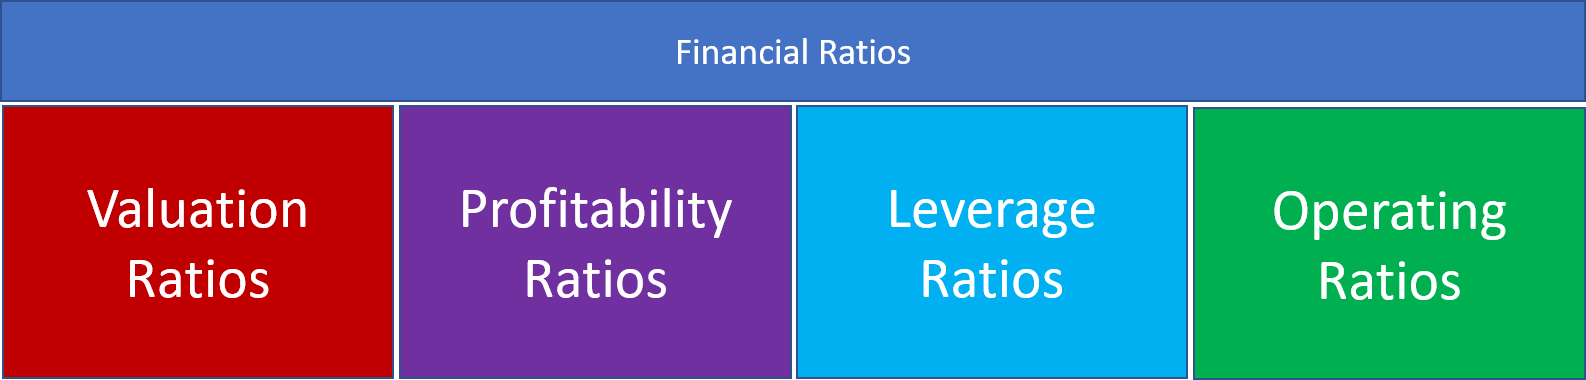 Financial Ratios & its Analysis